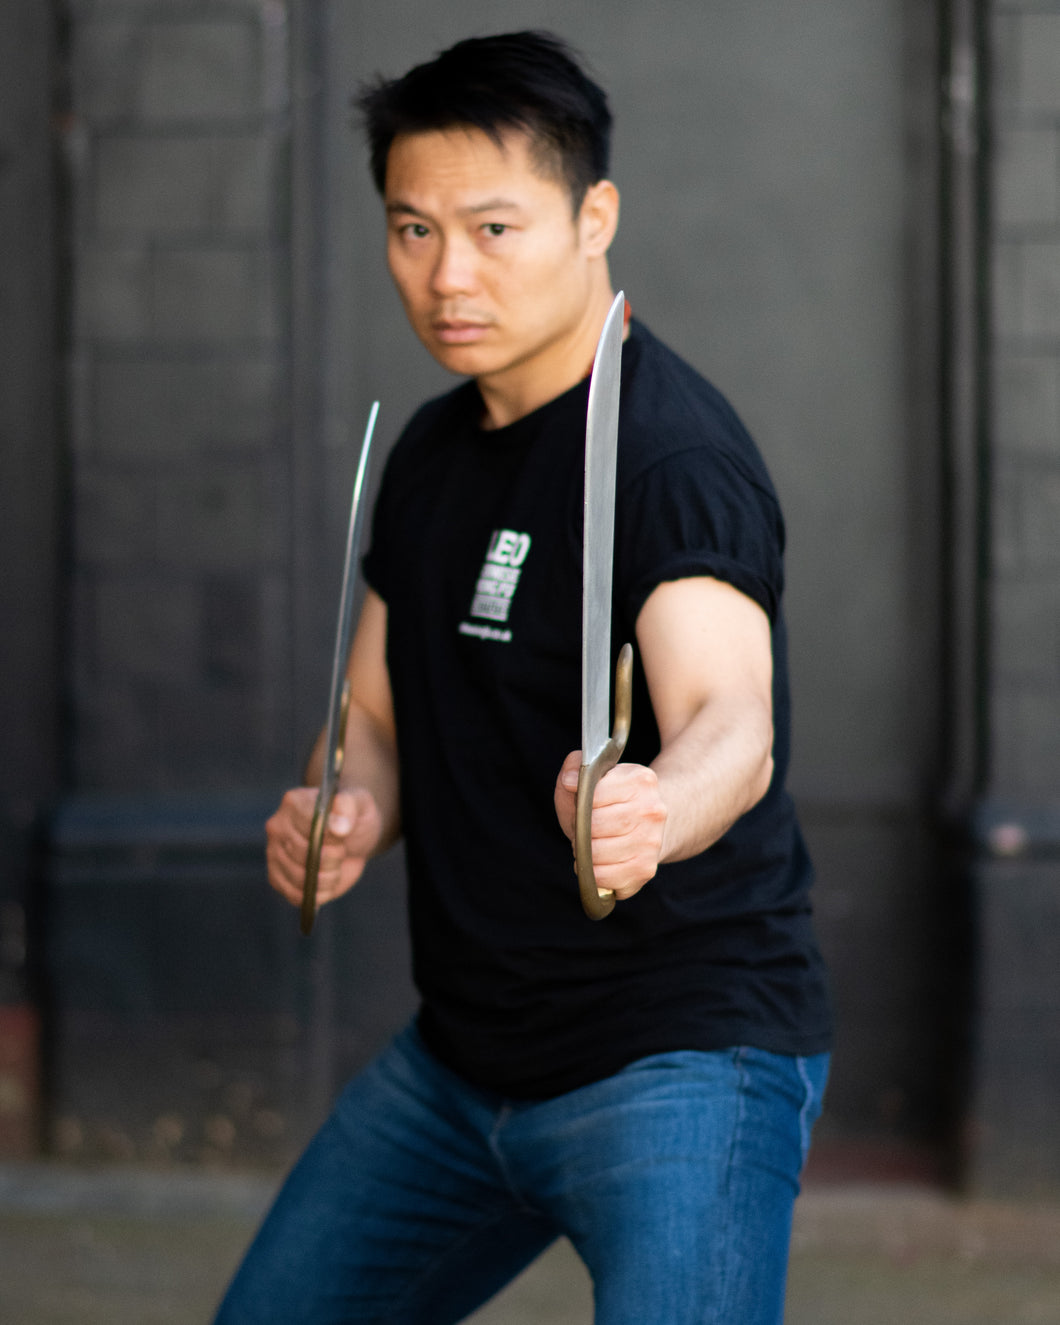 Systema knife seminar- Downloadable online course